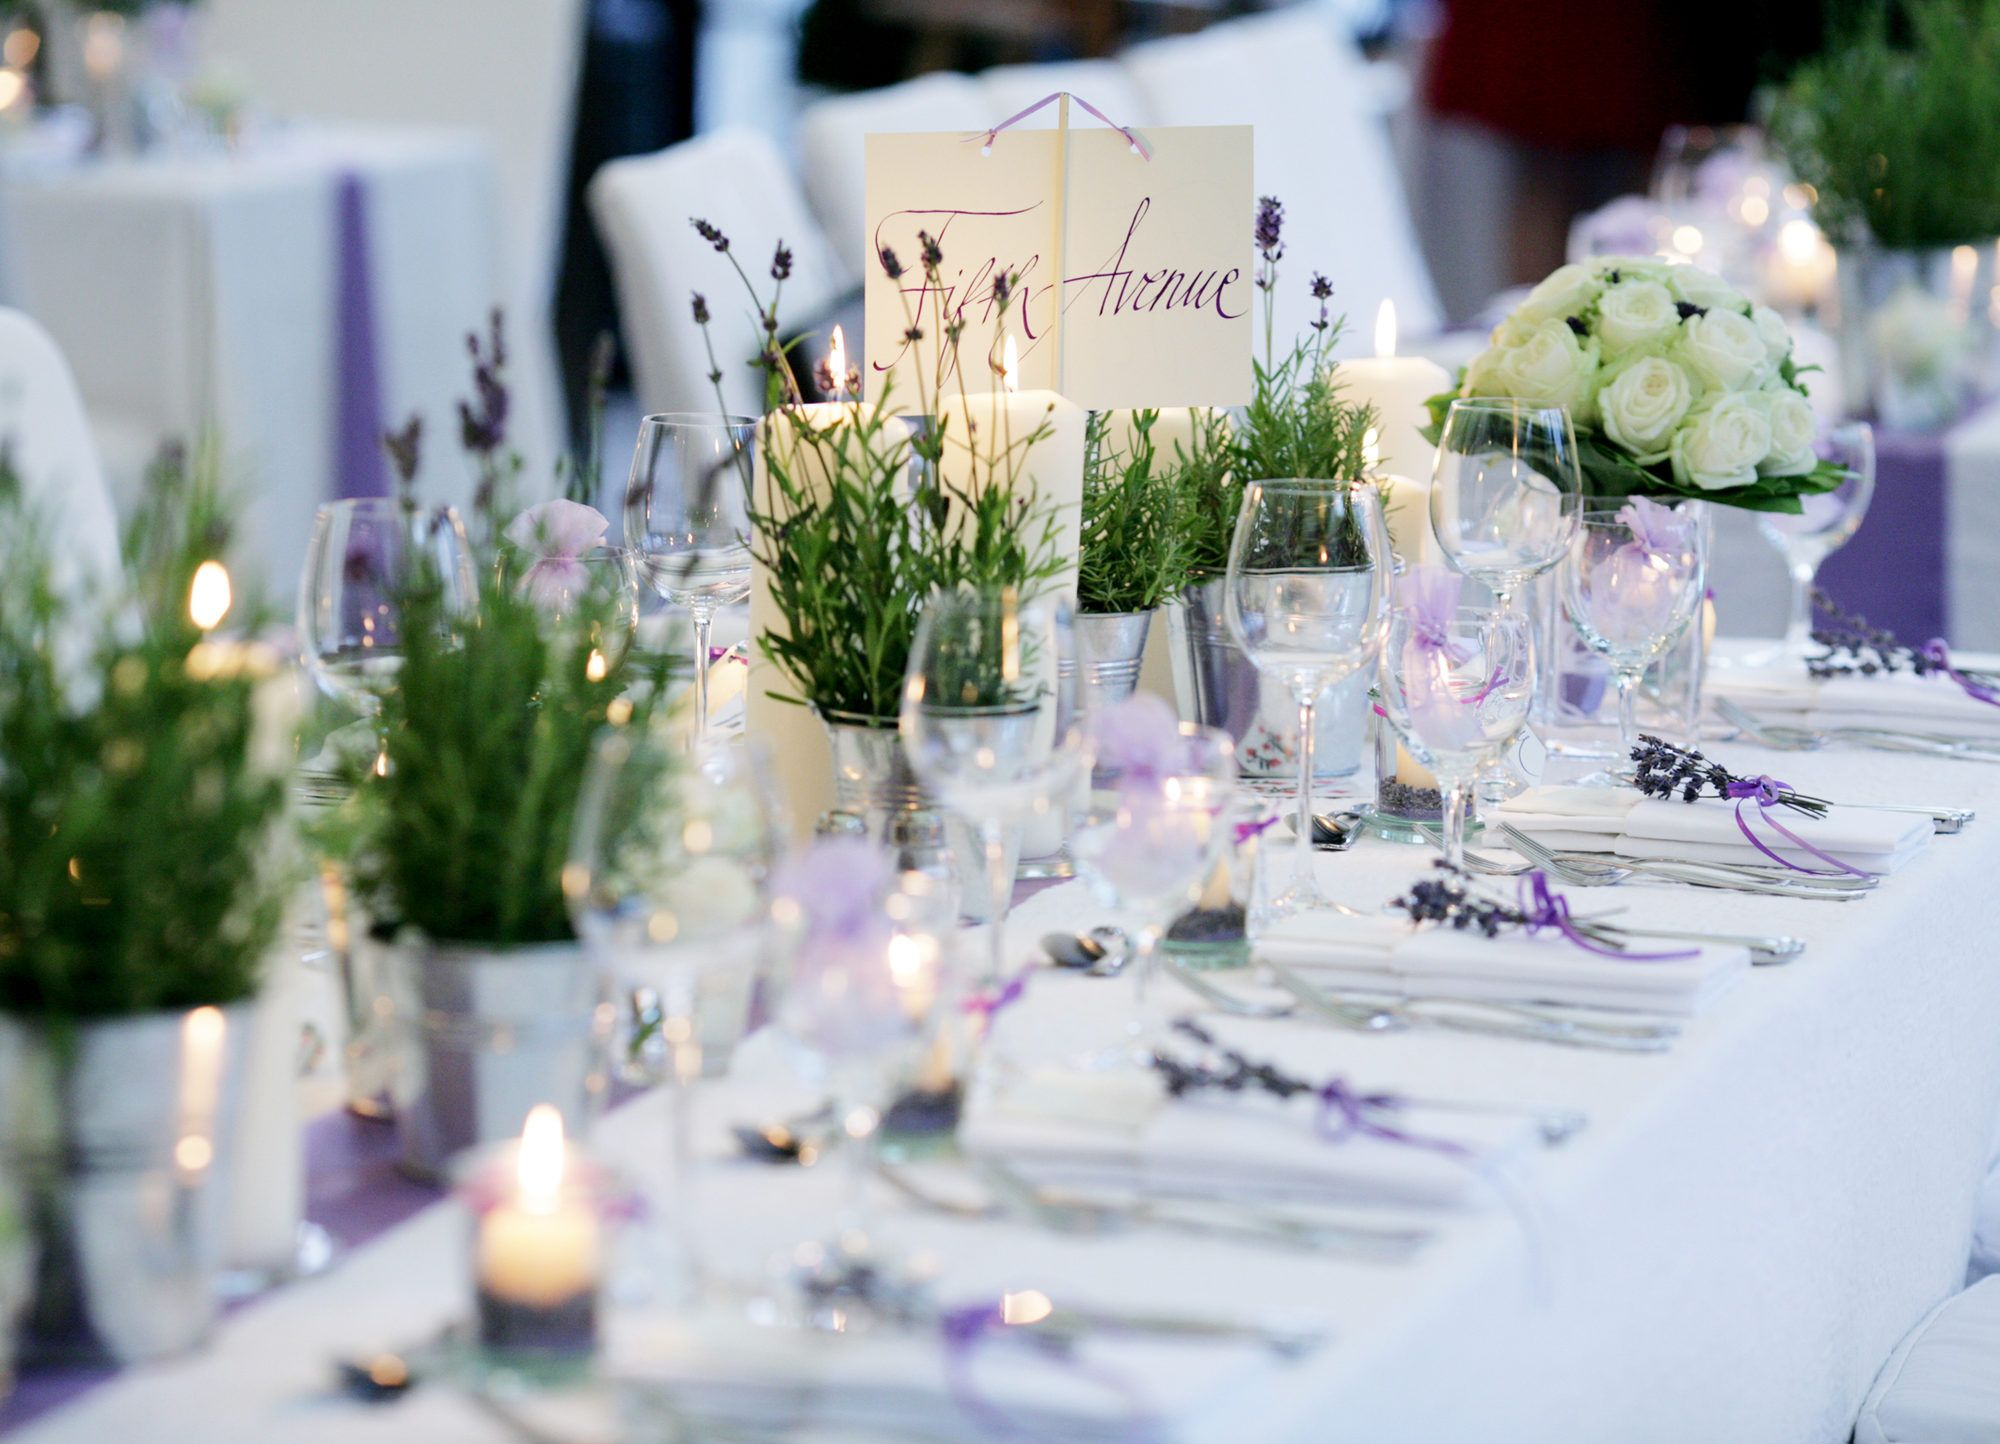 Simple Lovely Table Setting 3 Classy Lavander Touch Elegant